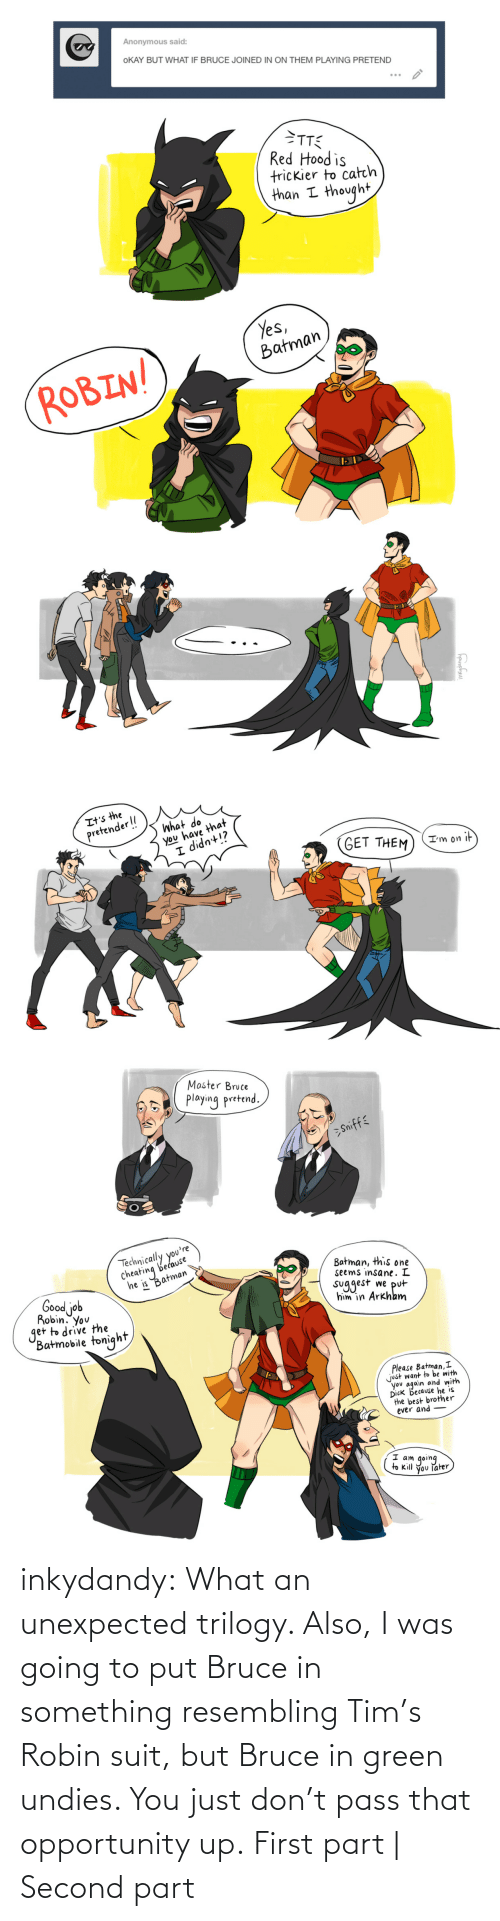 Part: inkydandy: What an unexpected trilogy. Also, I was going to put Bruce in something resembling Tim's Robin suit, but Bruce in green undies. You just don't pass that opportunity up. First part | Second part